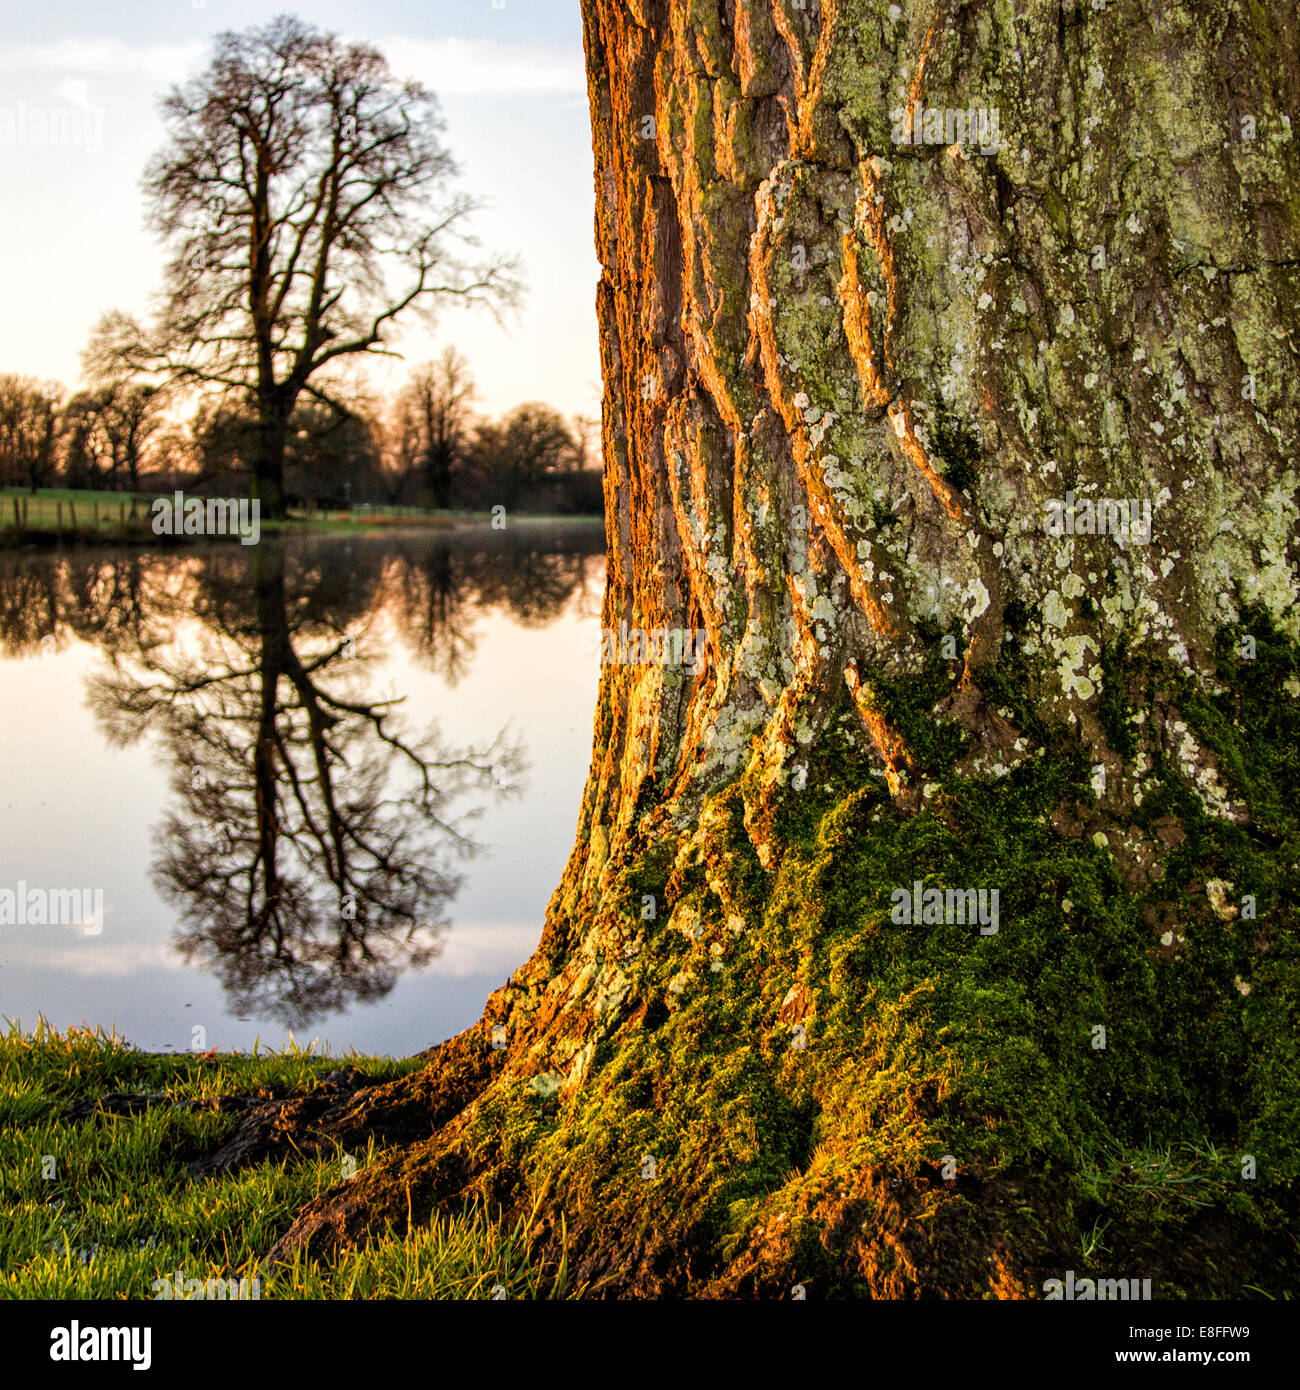 Tree by river - Stock Image